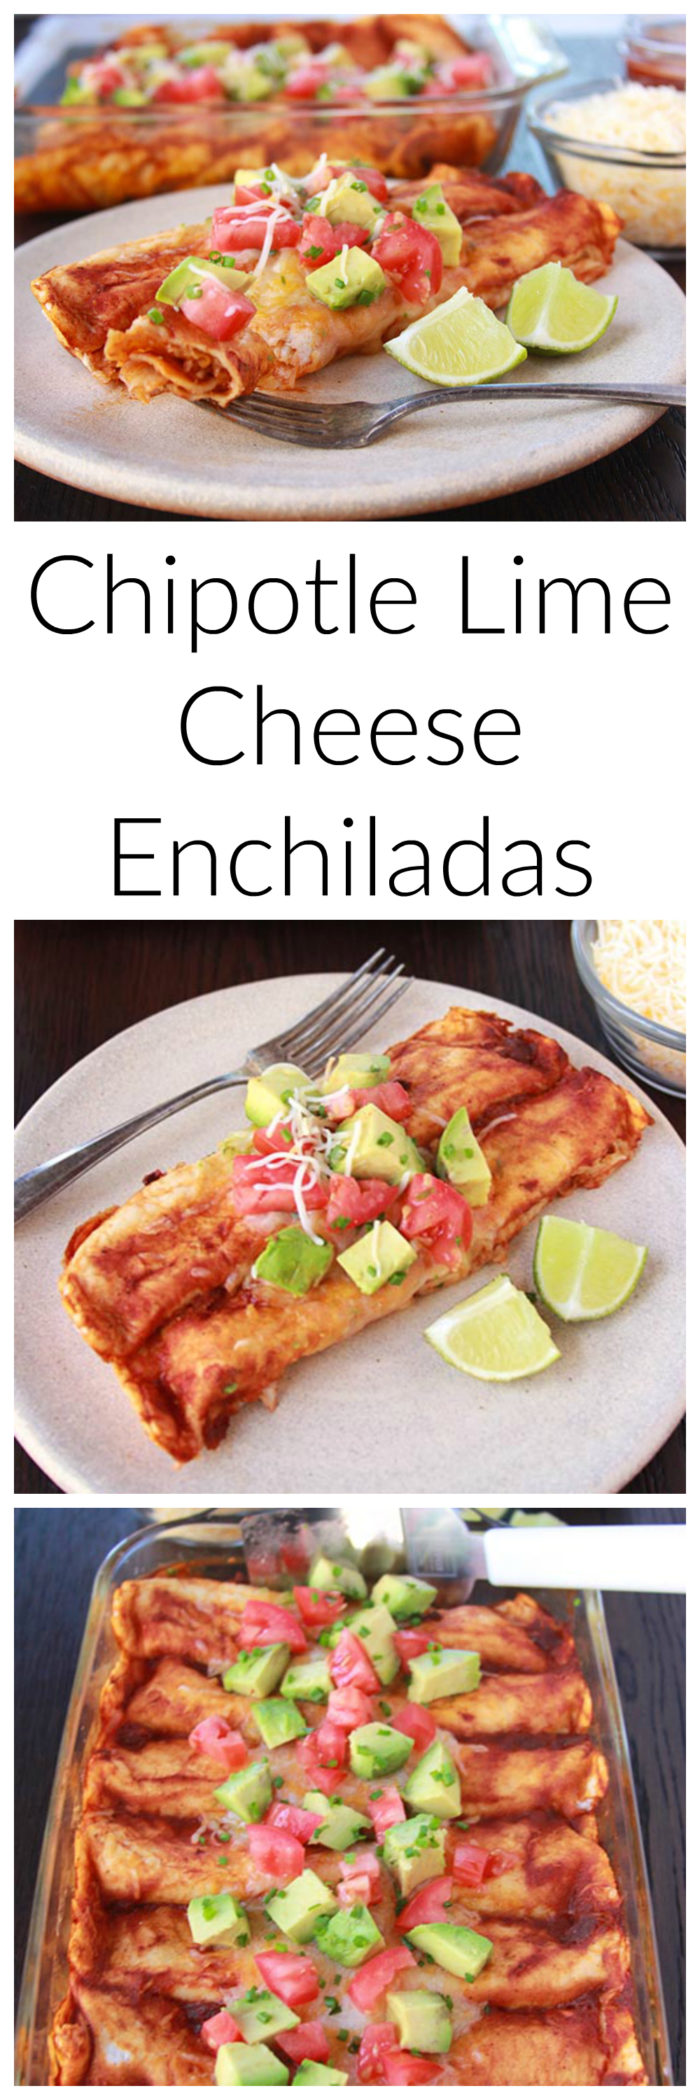 Chipotle Lime Cheese Enchiladas on www.cookingwithruthie.com is a cheesy mexican dinner your family will love! #ad @sargento